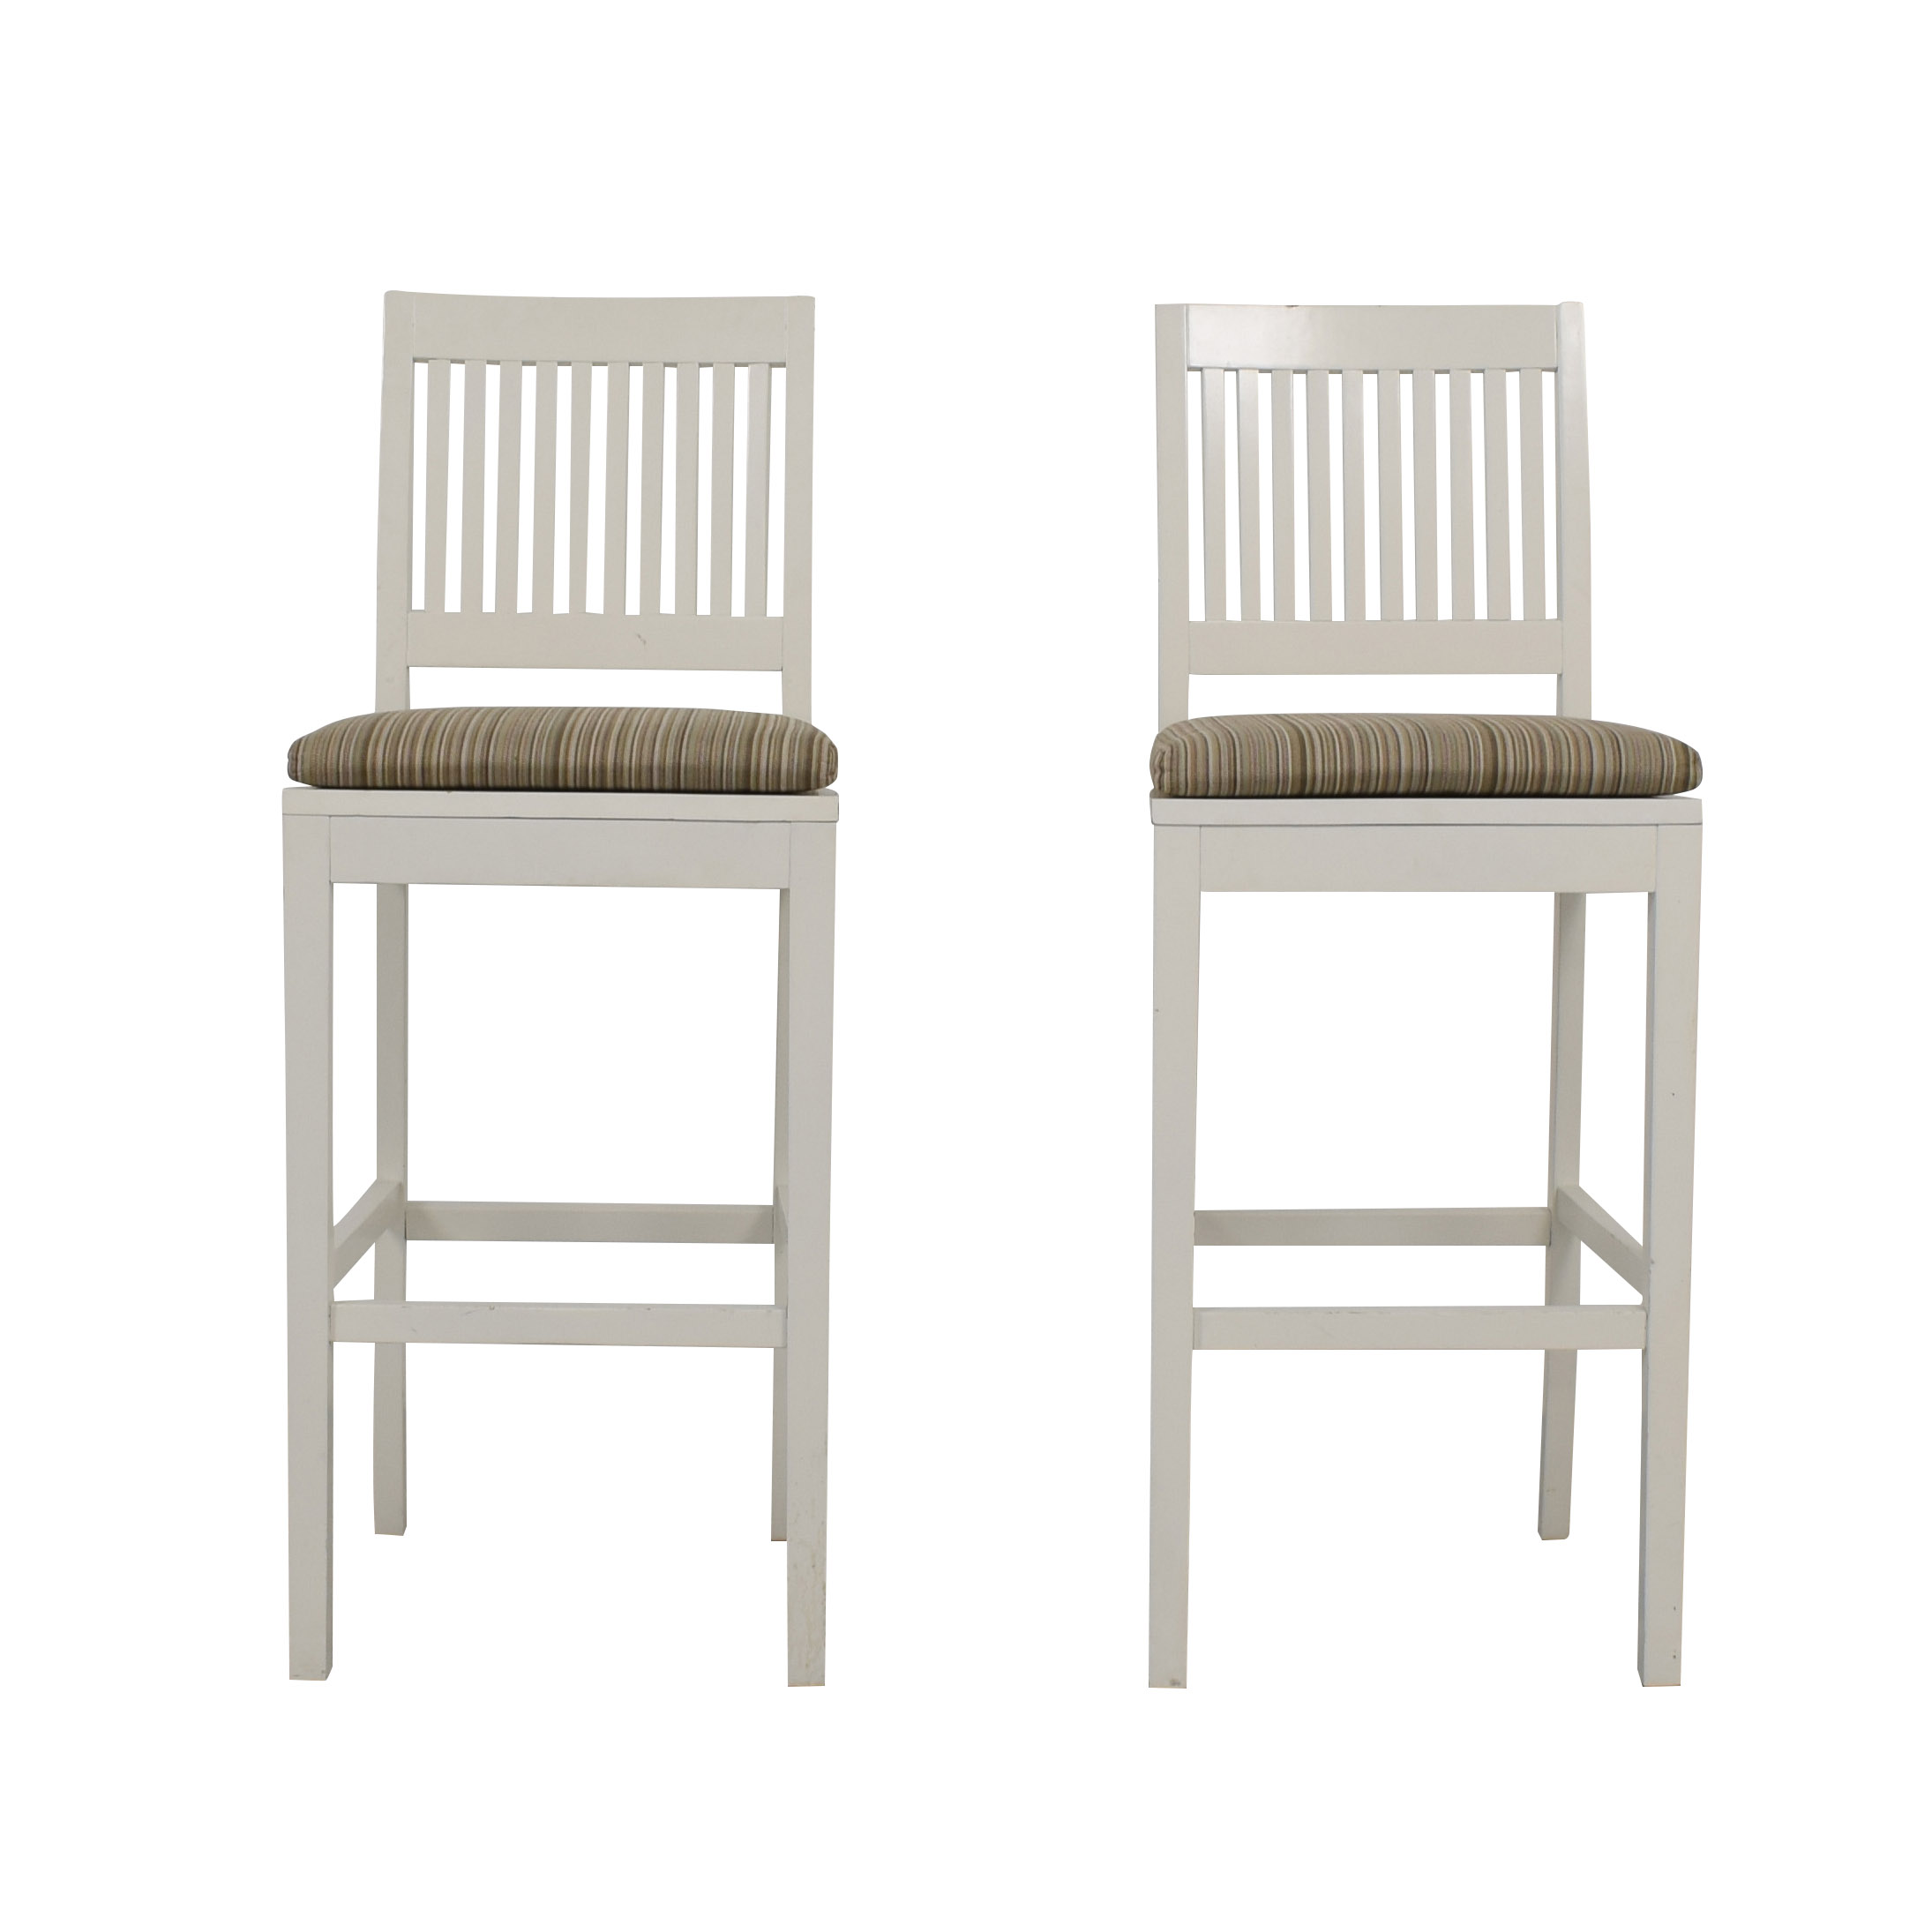 buy Crate & Barrel Aspen White Bar Stools Crate & Barrel Chairs